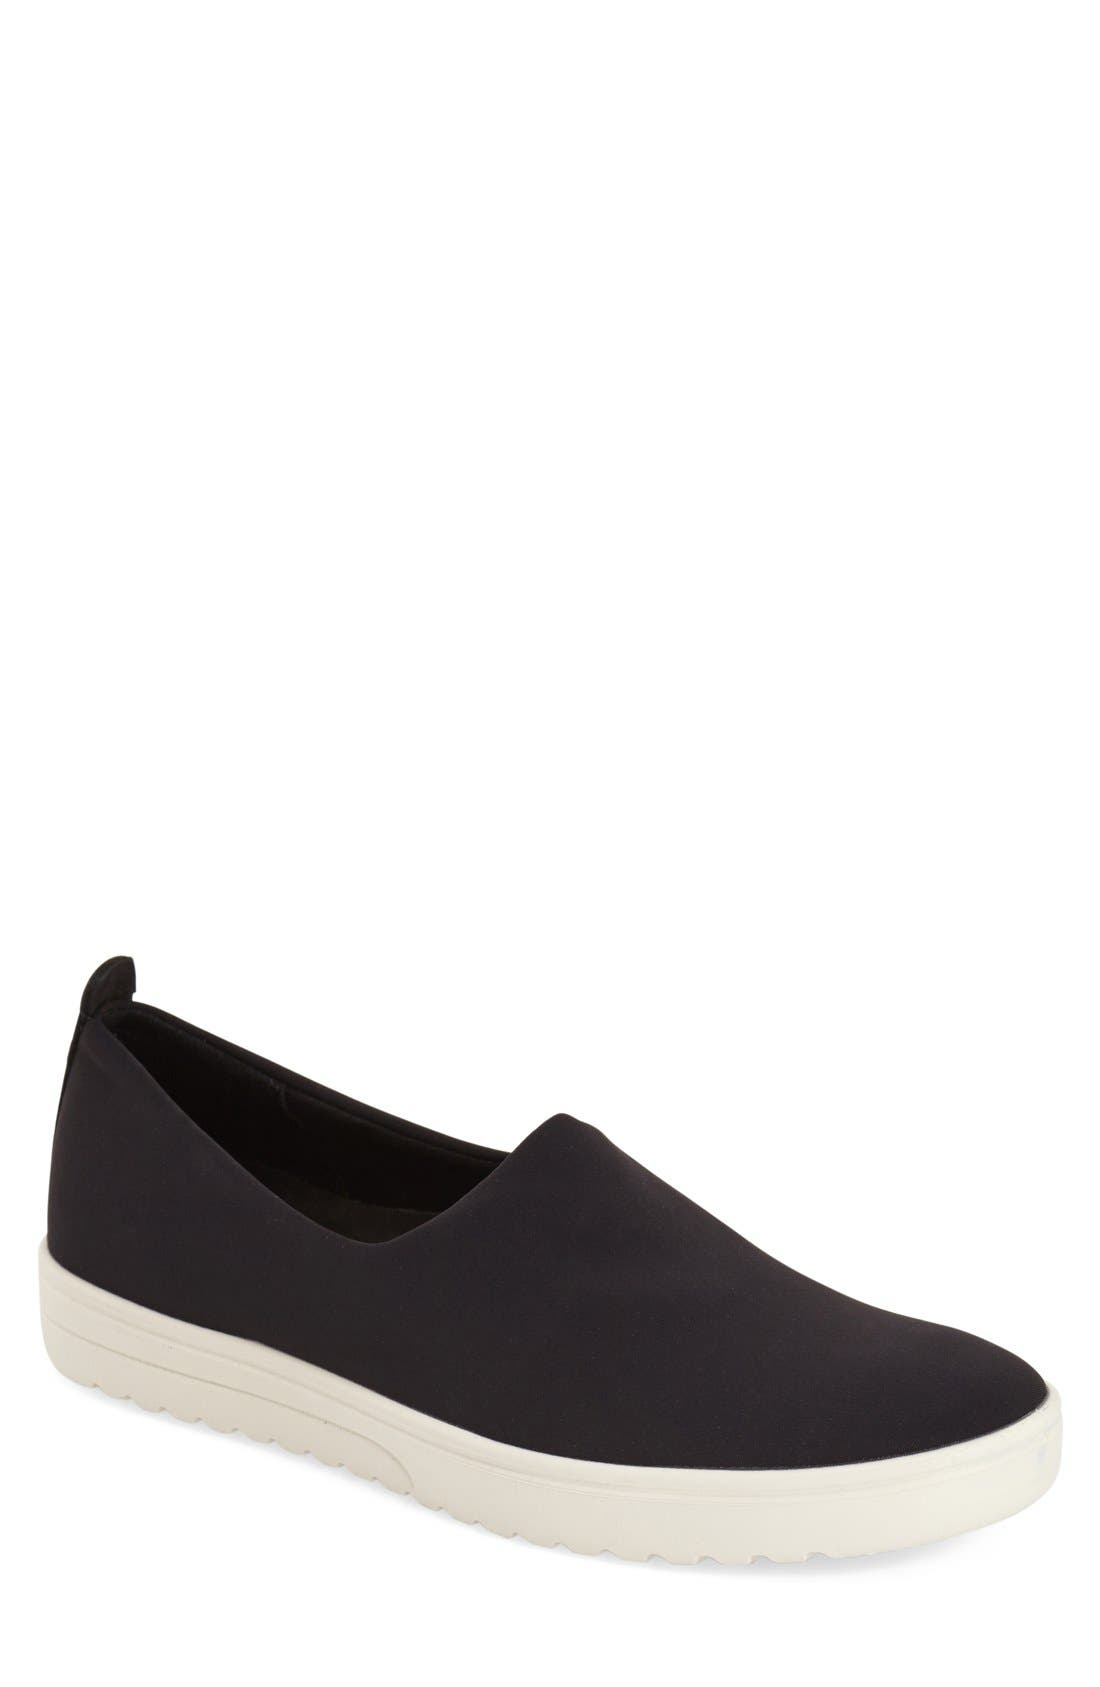 Main Image - ECCO 'Fara' Slip-On Sneaker (Women)